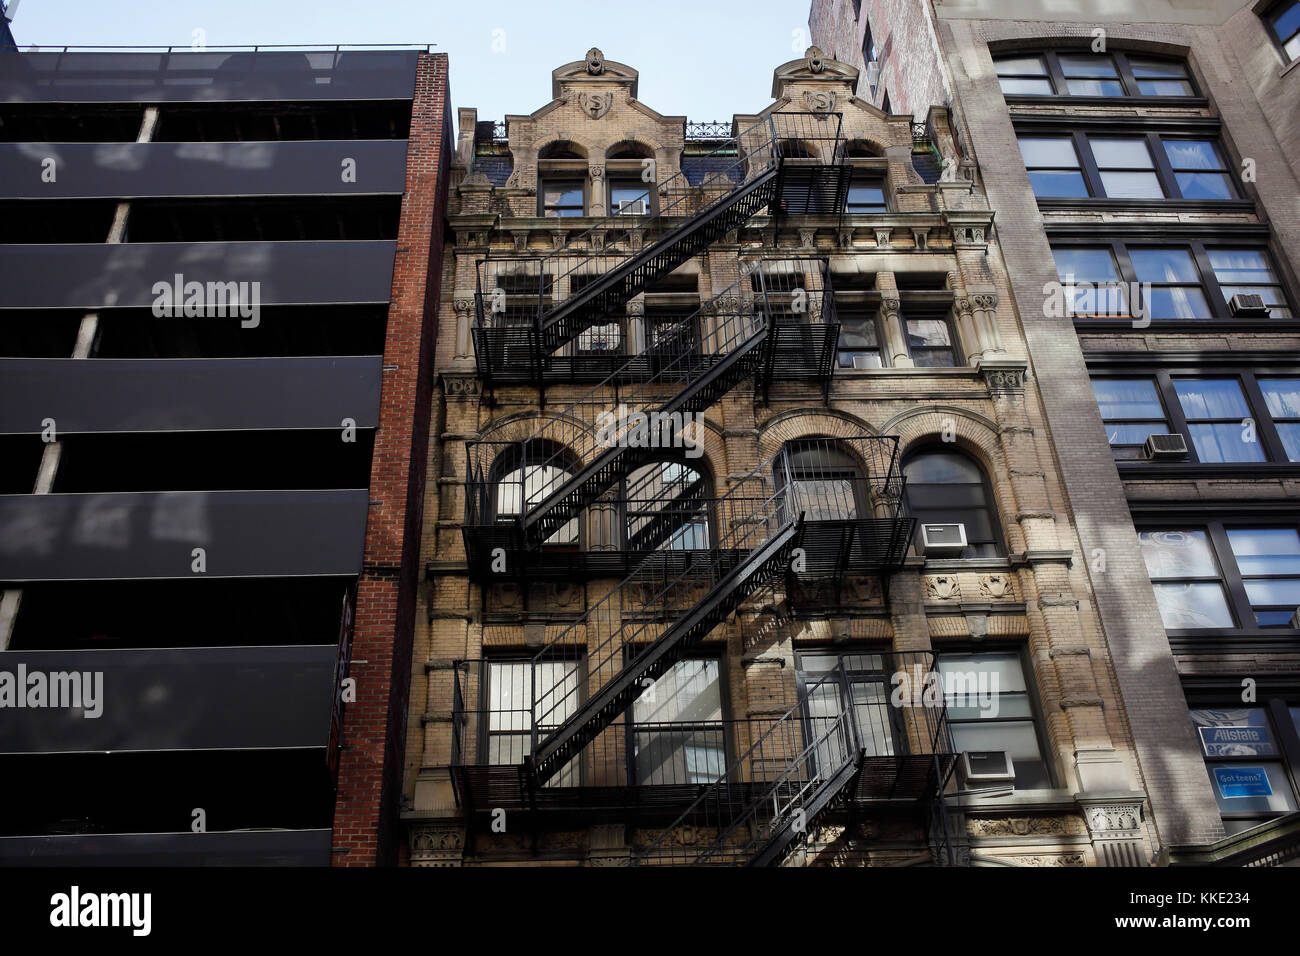 Bâtiment avec une architecture de style flamand à New York City Photo Stock